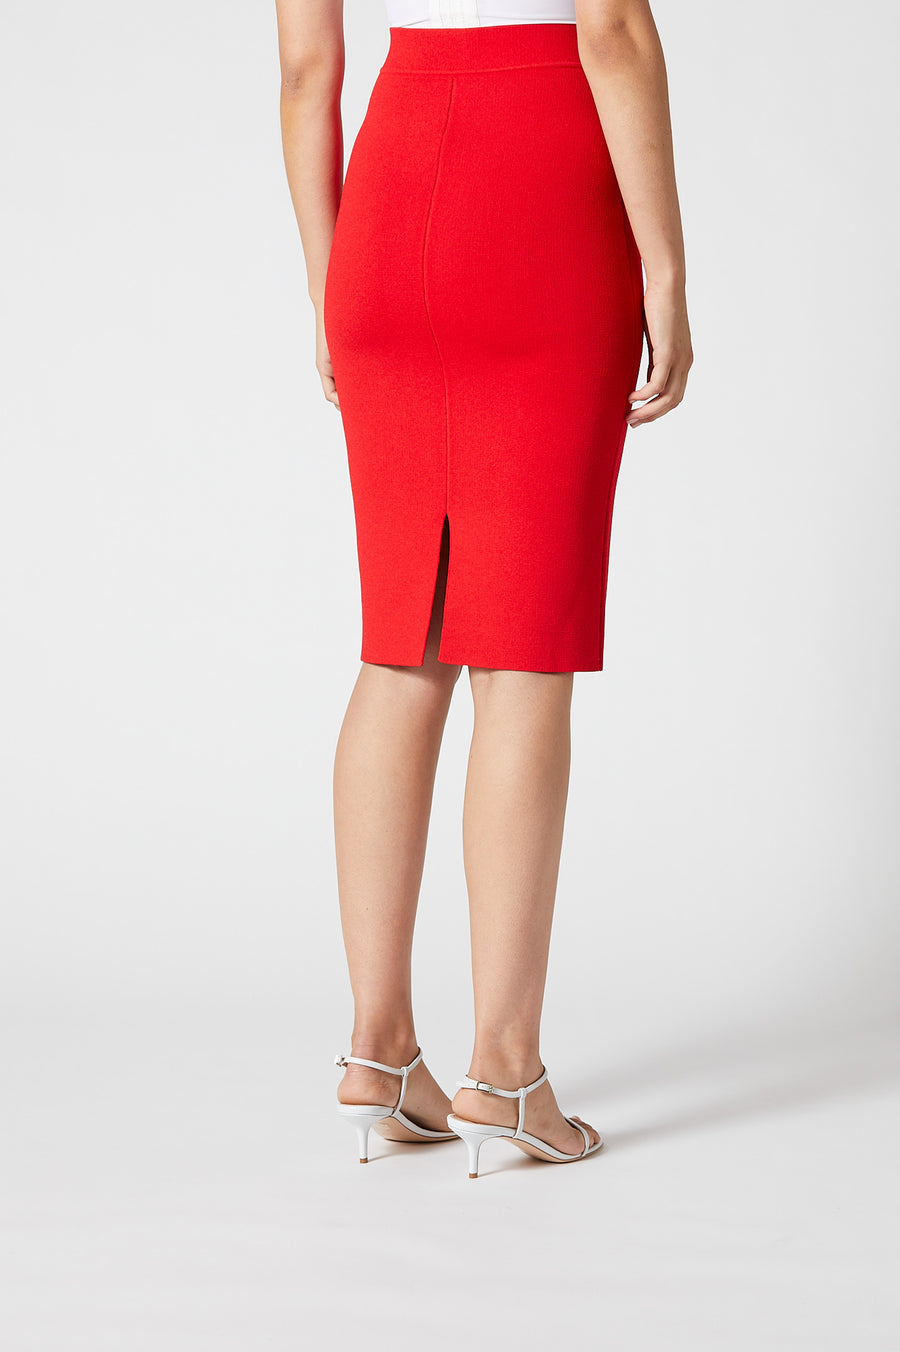 Crepe Knit Slit Back Skirt Red - Scanlan Theodore